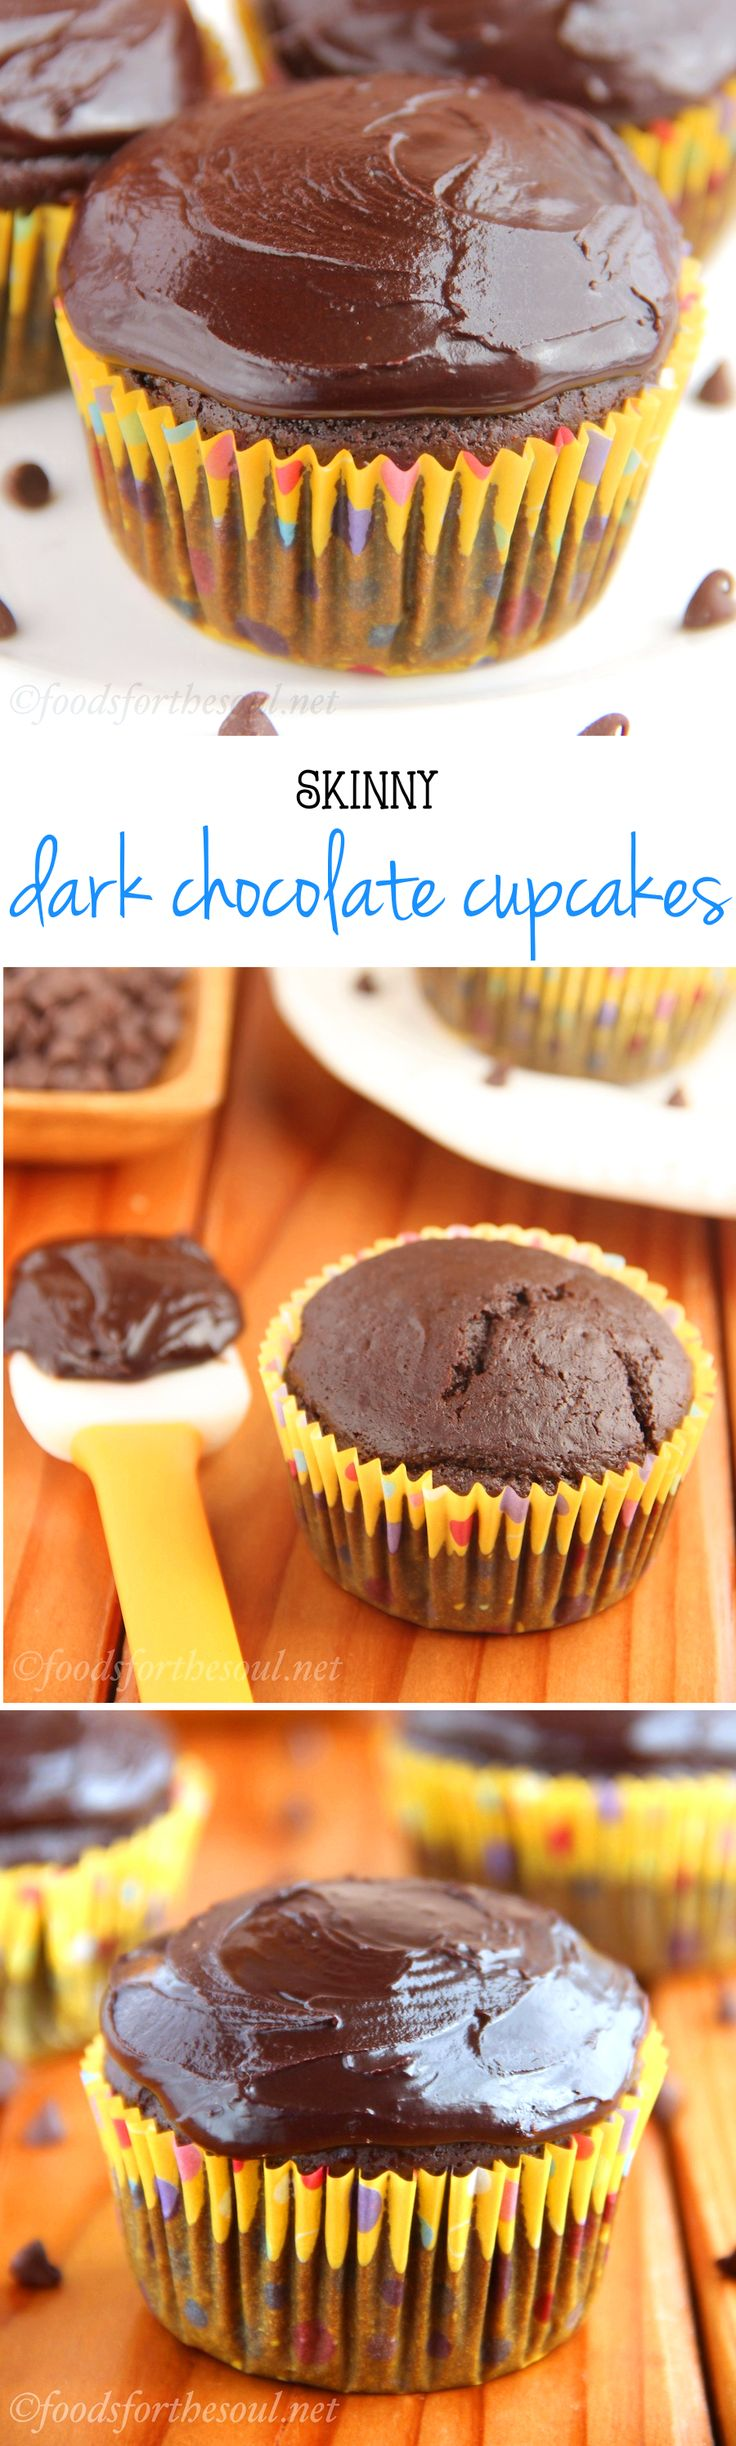 An easy, no-mixer-required recipe for skinny dark chocolate cupcakes. They taste so decadent -- you can't tell they're lightened up at all!